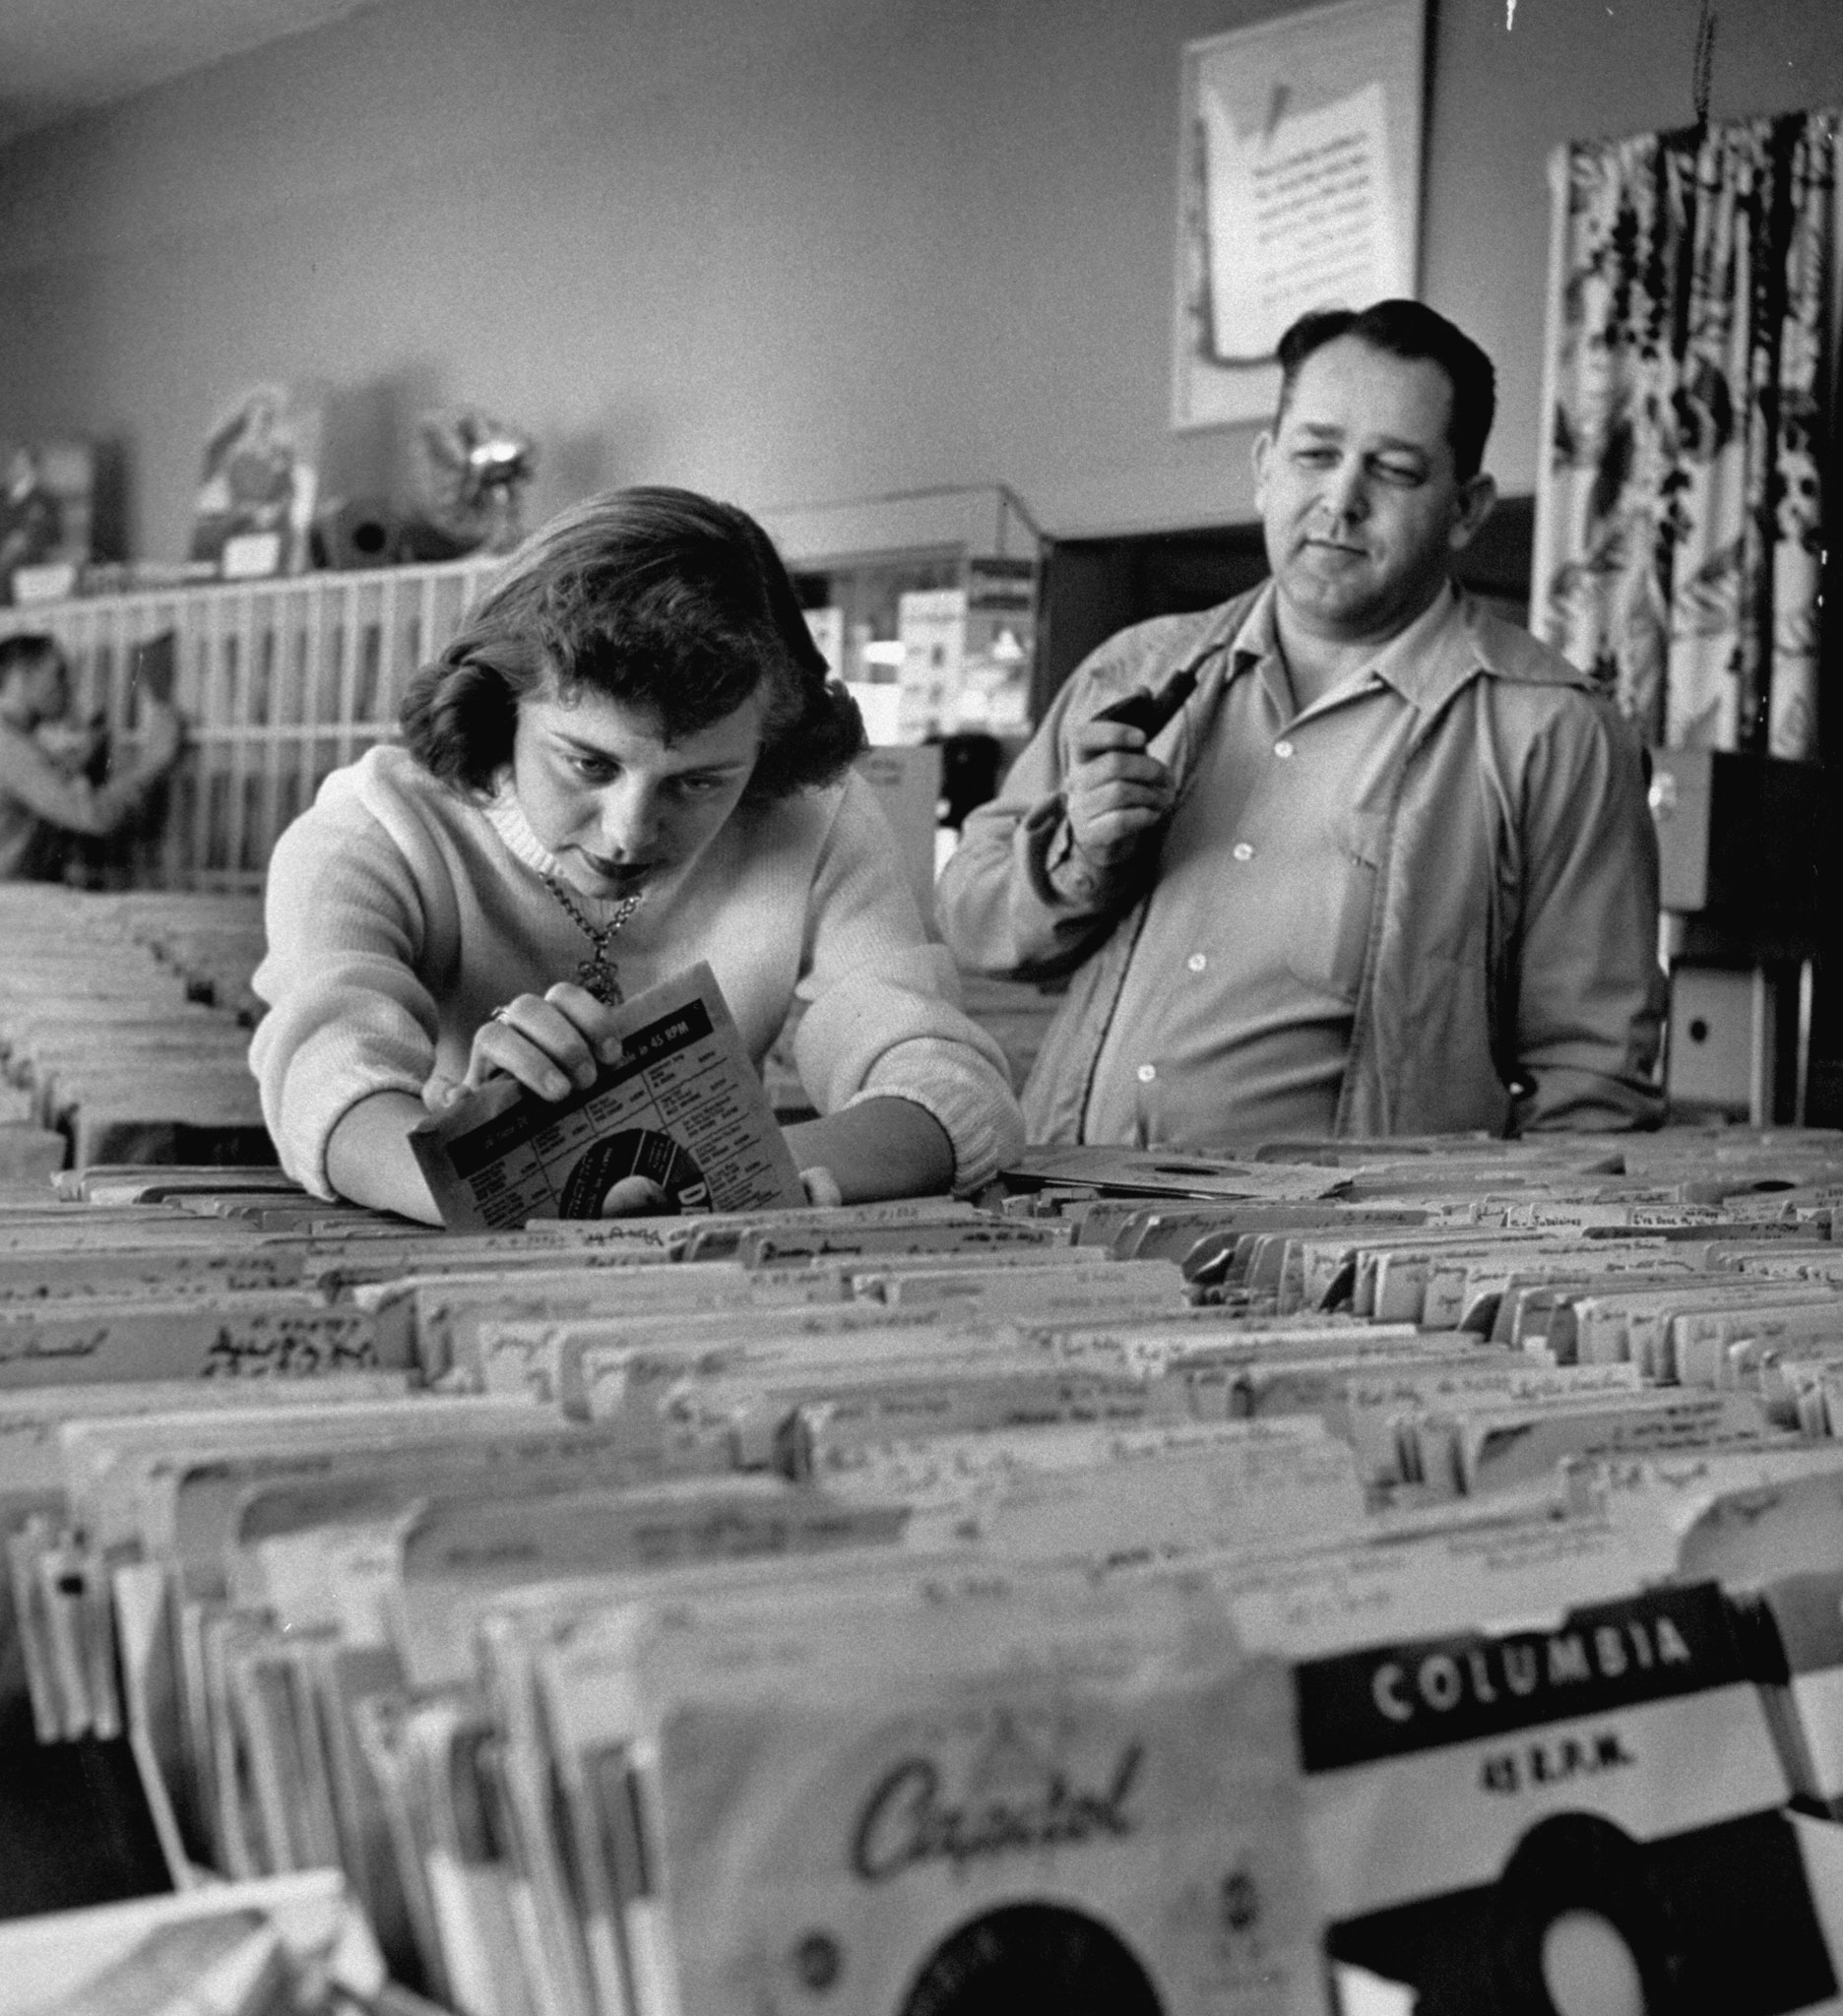 <b>Caption from LIFE.</b> Pay in trade is taken by Margaret High, 17, who works in music store, spends salary on records.